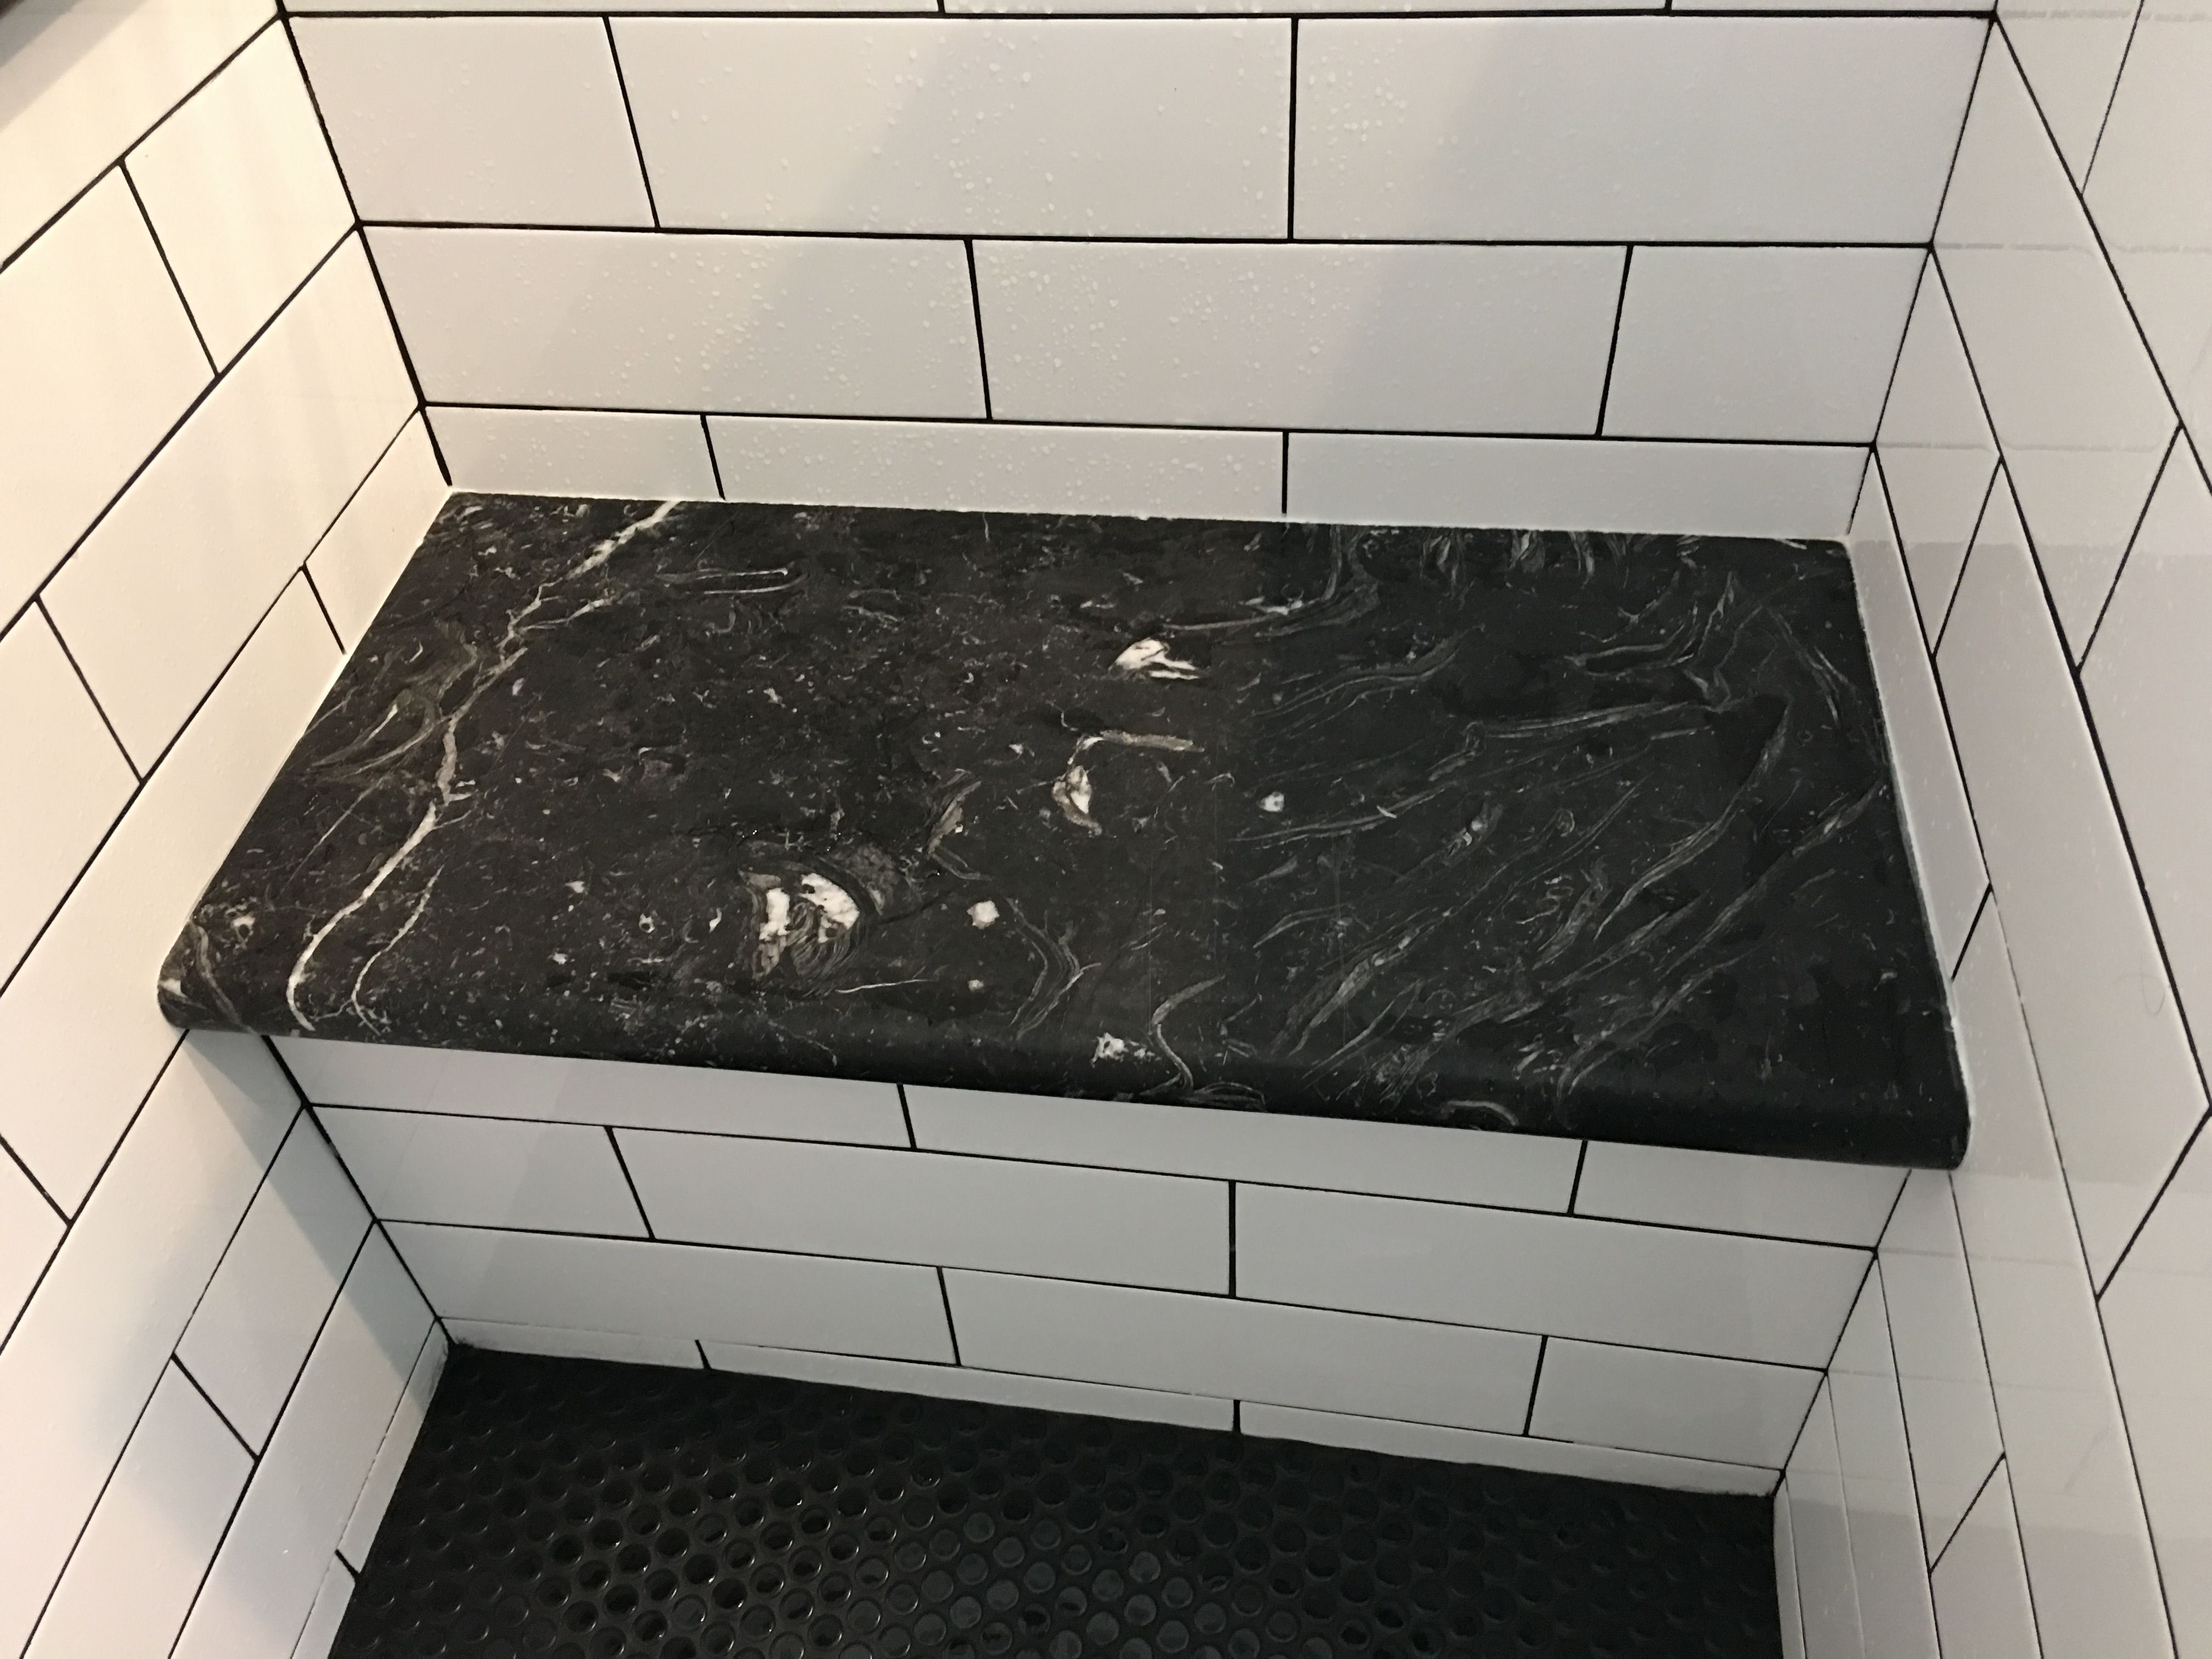 Shower Bench With Marble Seat And Matte Black Penny Round Floor Tile